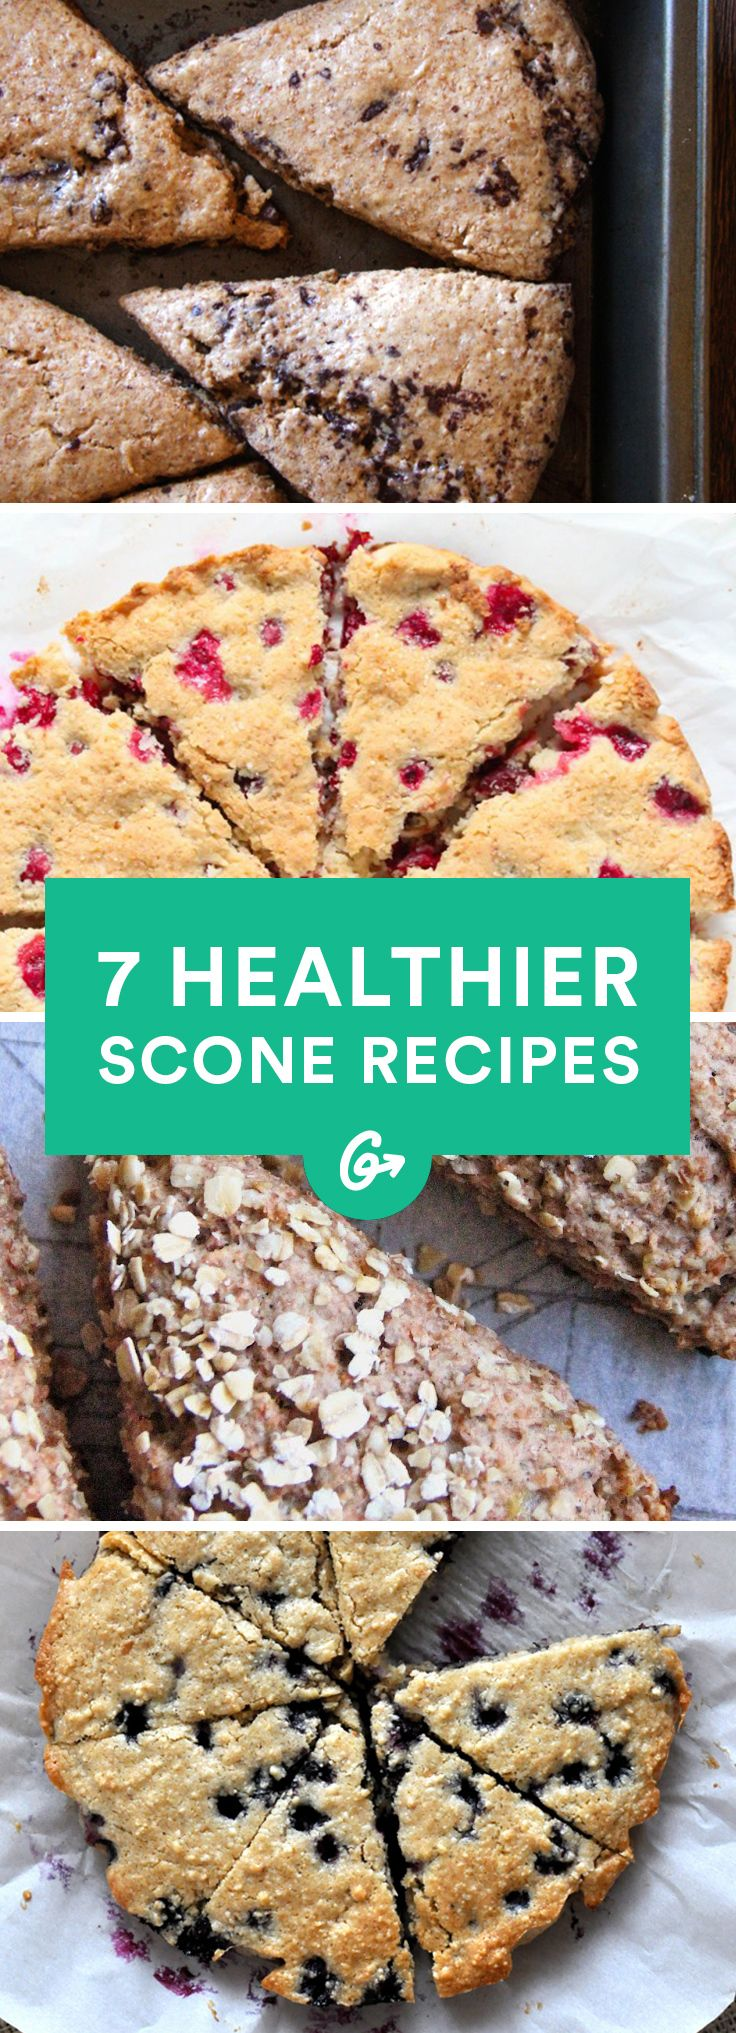 7 Healthier Scone Recipes to Satisfy Your Sweet Tooth #healthy #scone #recipes http://greatist.com/eat/healthy-scone-recipes